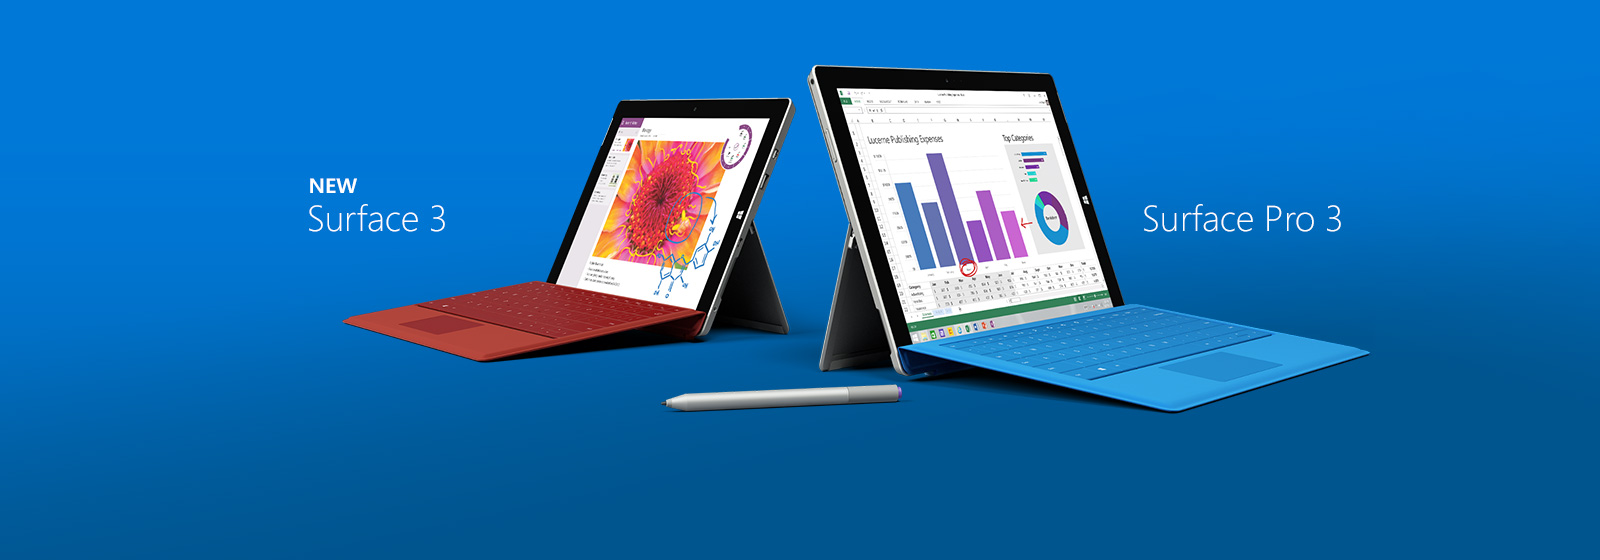 There's a Surface that's right for everyone. Shop now.